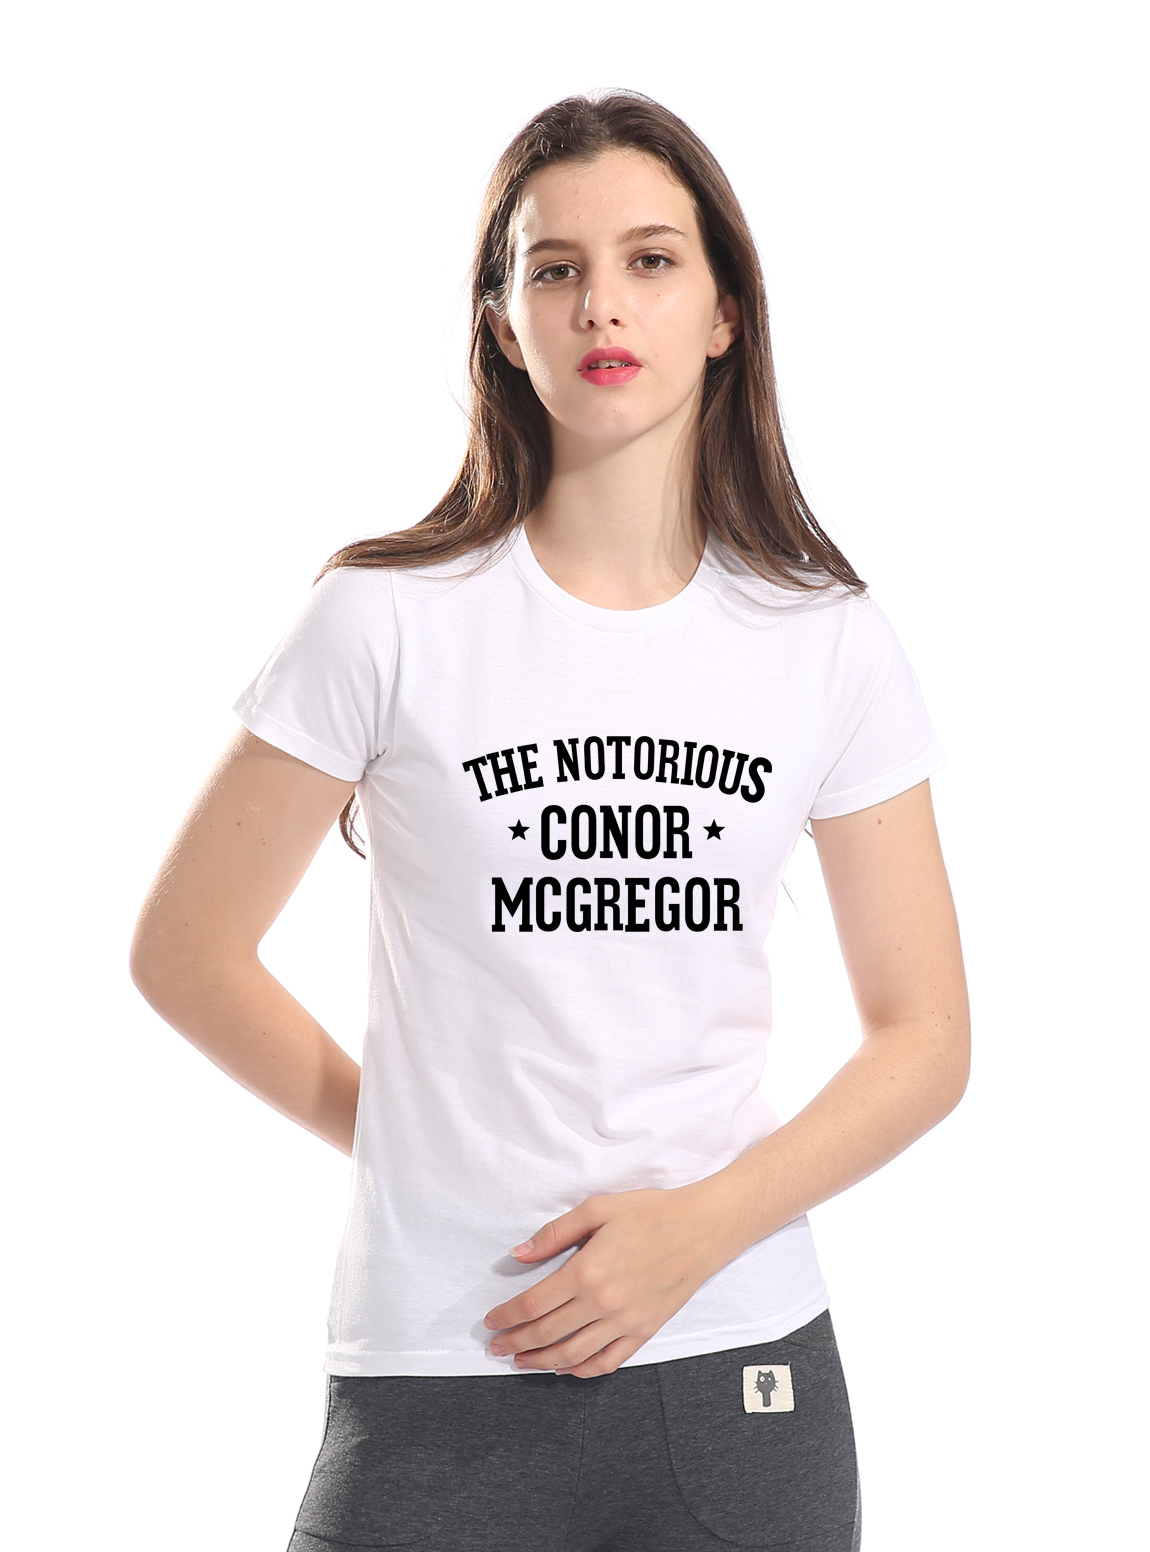 The Notorious Conor McGregor Letters Printed T Shirt Women 2019 Summer Cotton Casual Streetwear Women's T-shirts Brand Top Tee